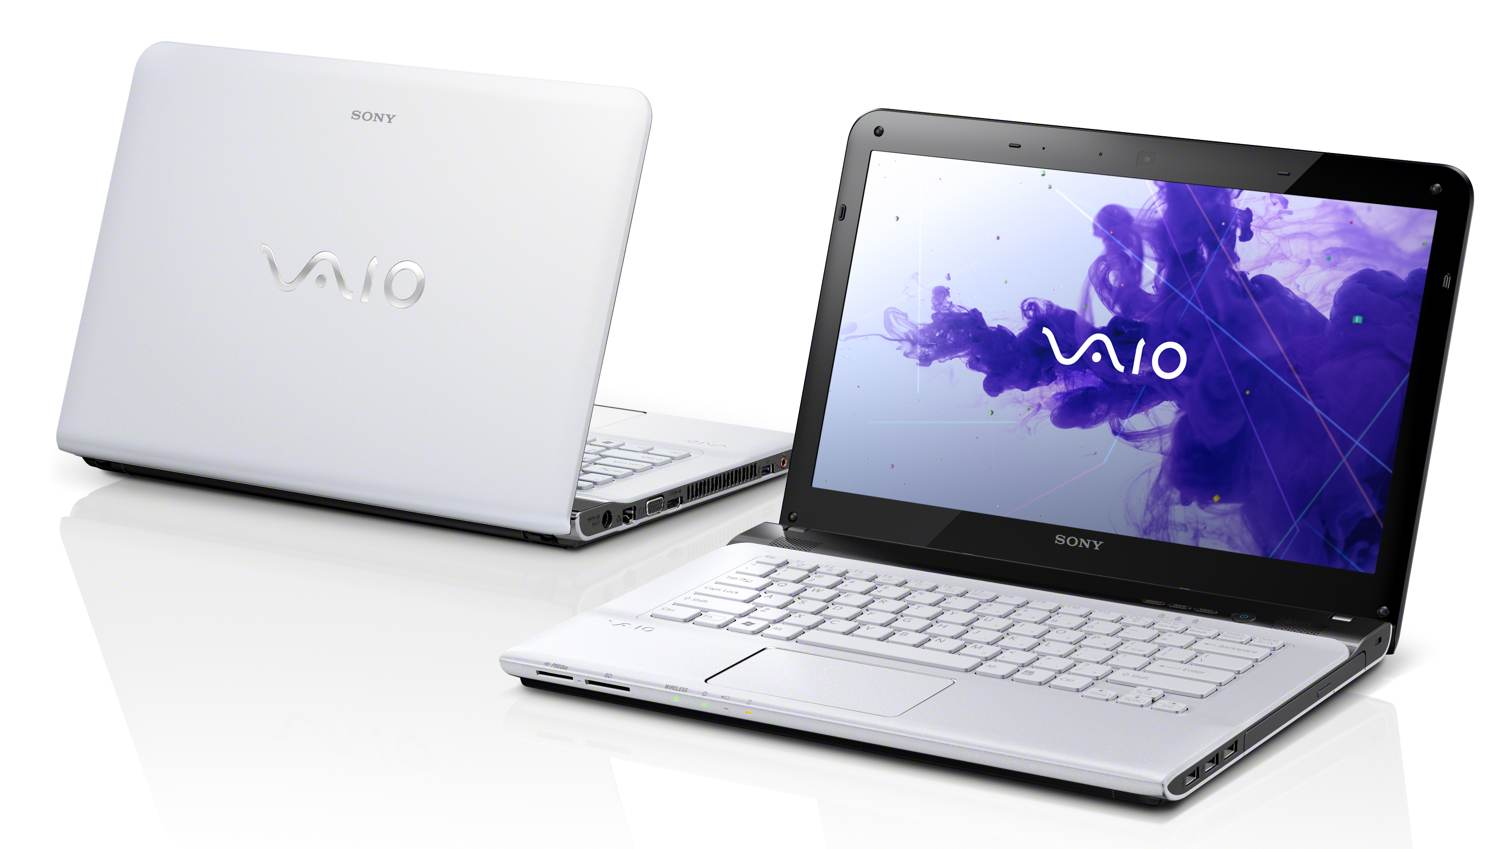 The VAIO VPCEA490X laptop front view